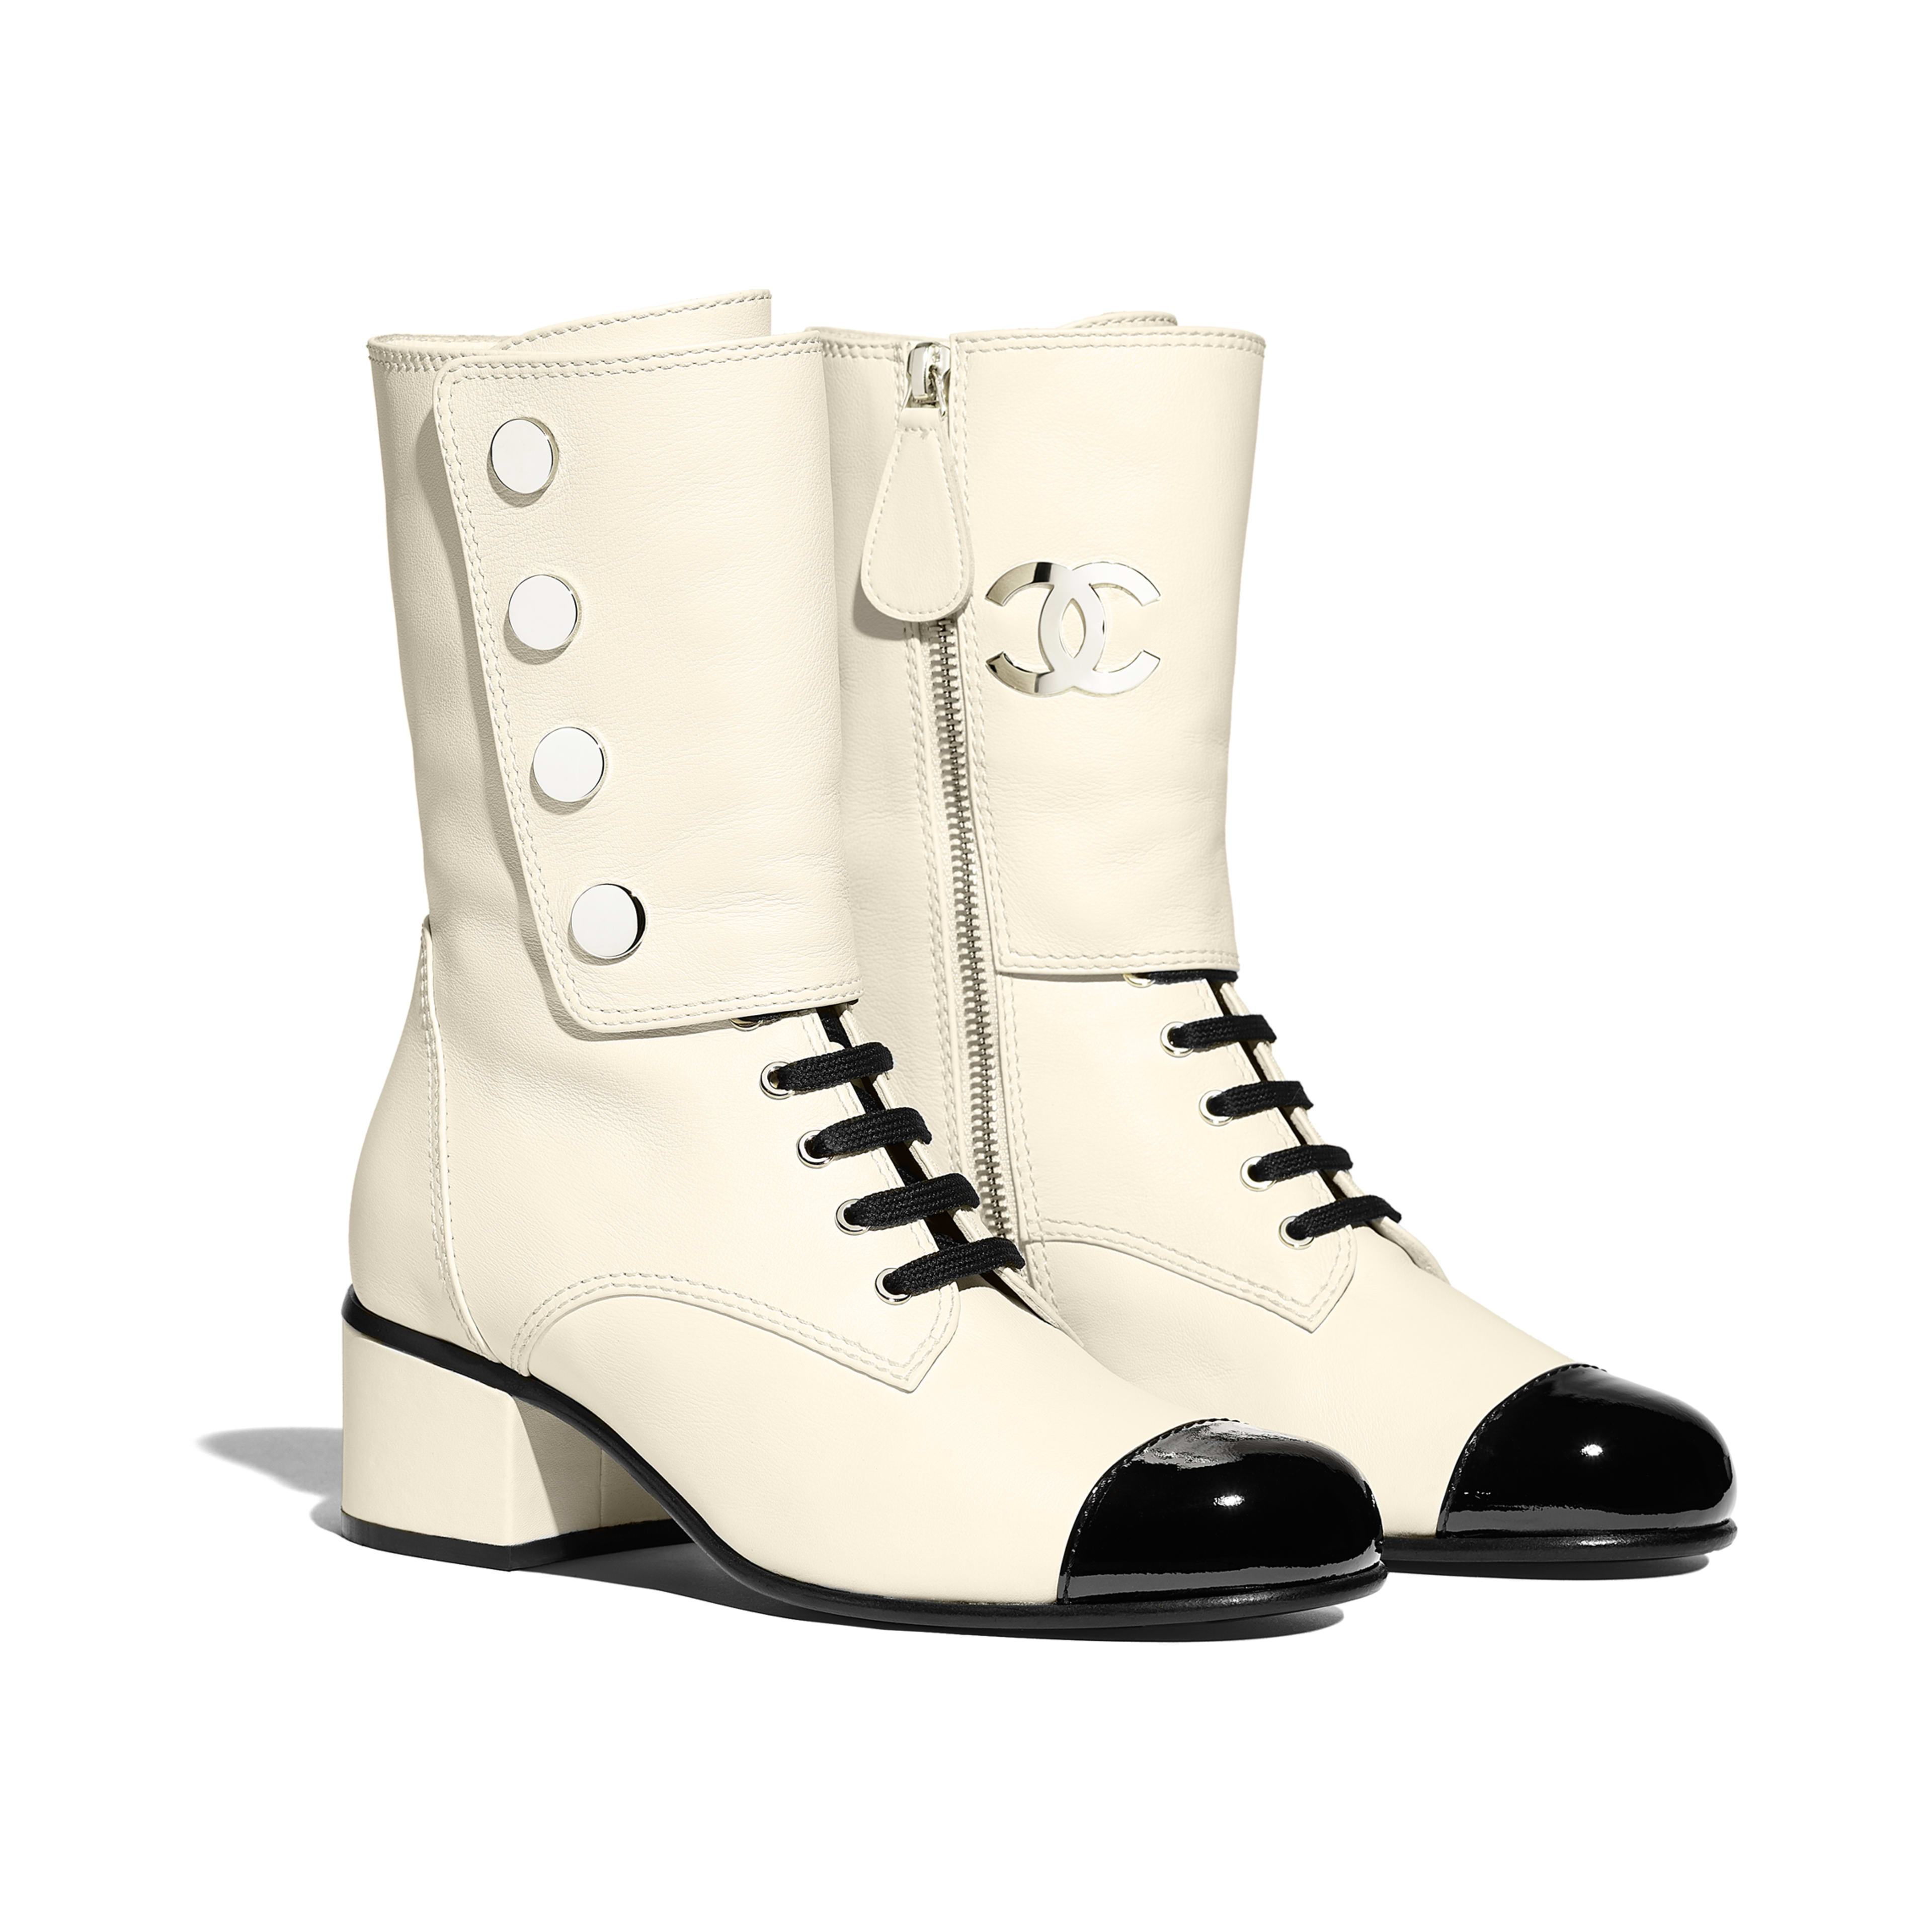 Ankle Boots - Ivory & Black - Calfskin & Patent Calfskin - Alternative view - see full sized version